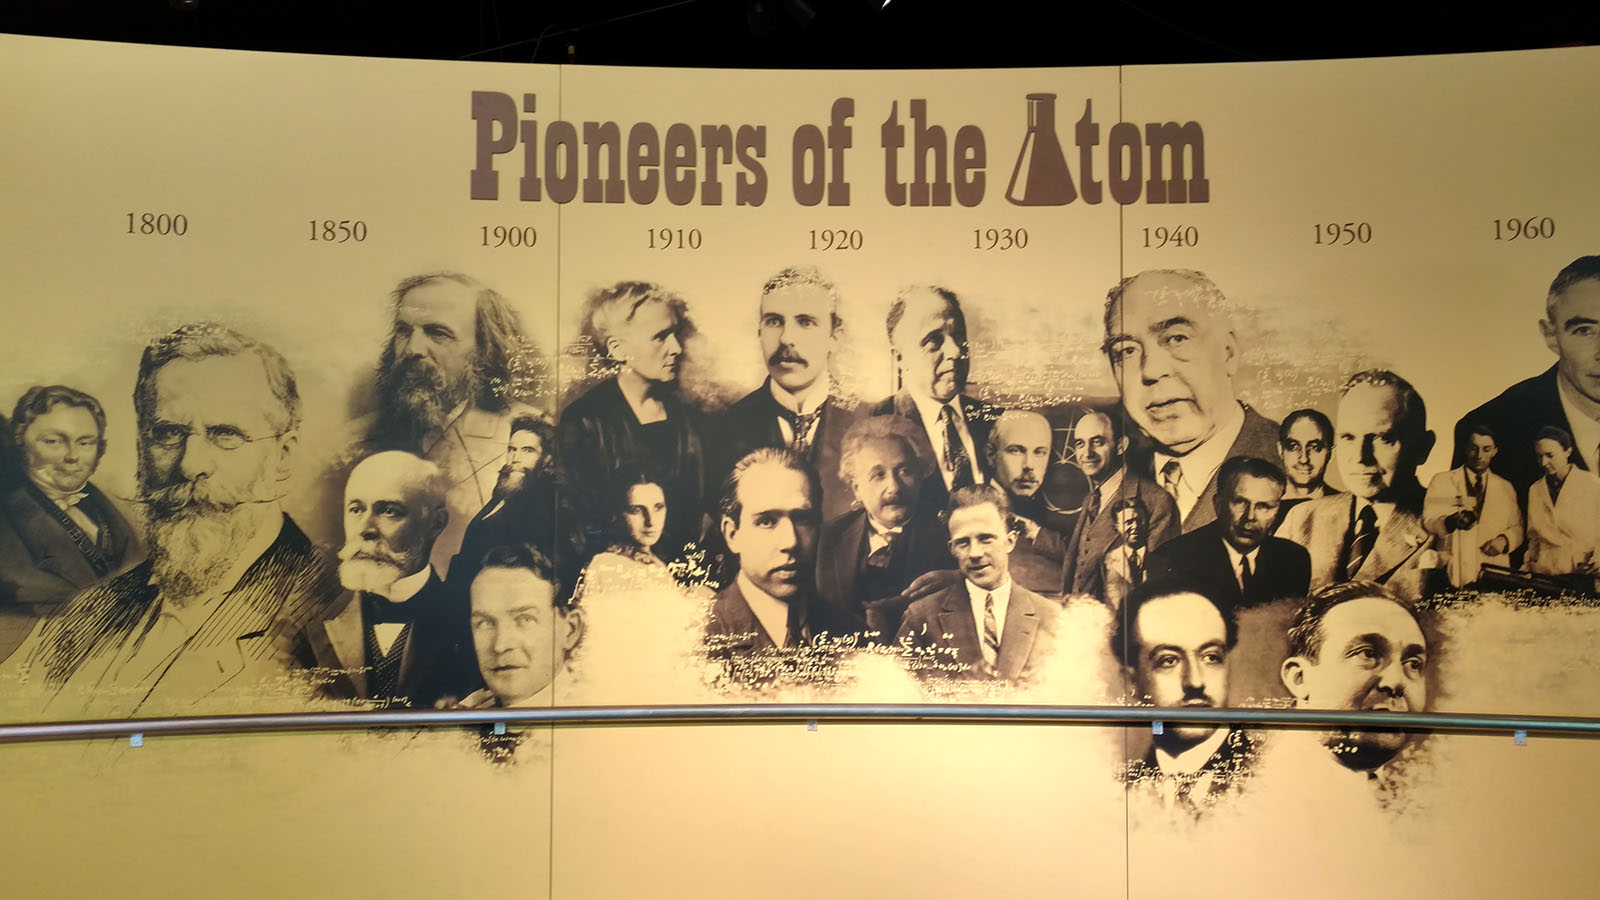 Pioneers of the Atom mural